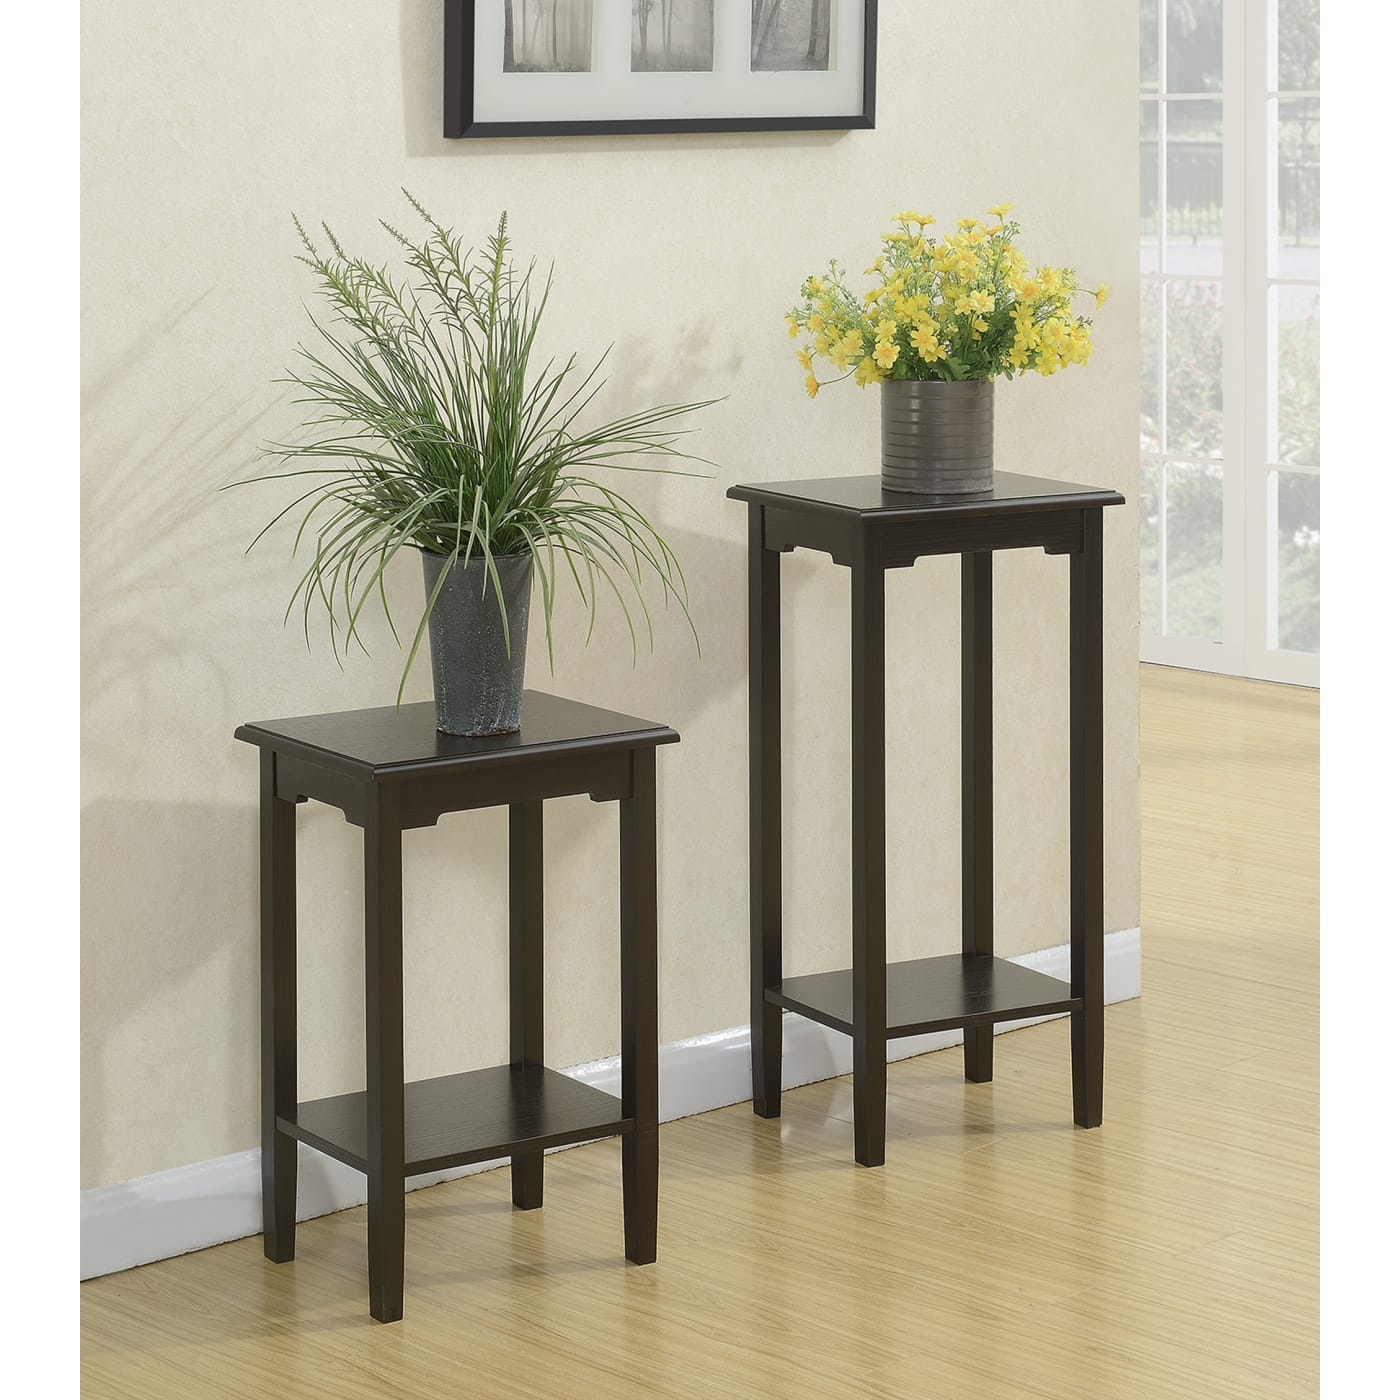 Convenience Concepts R4 0248 American Heritage Espresso 24 Plant Stand